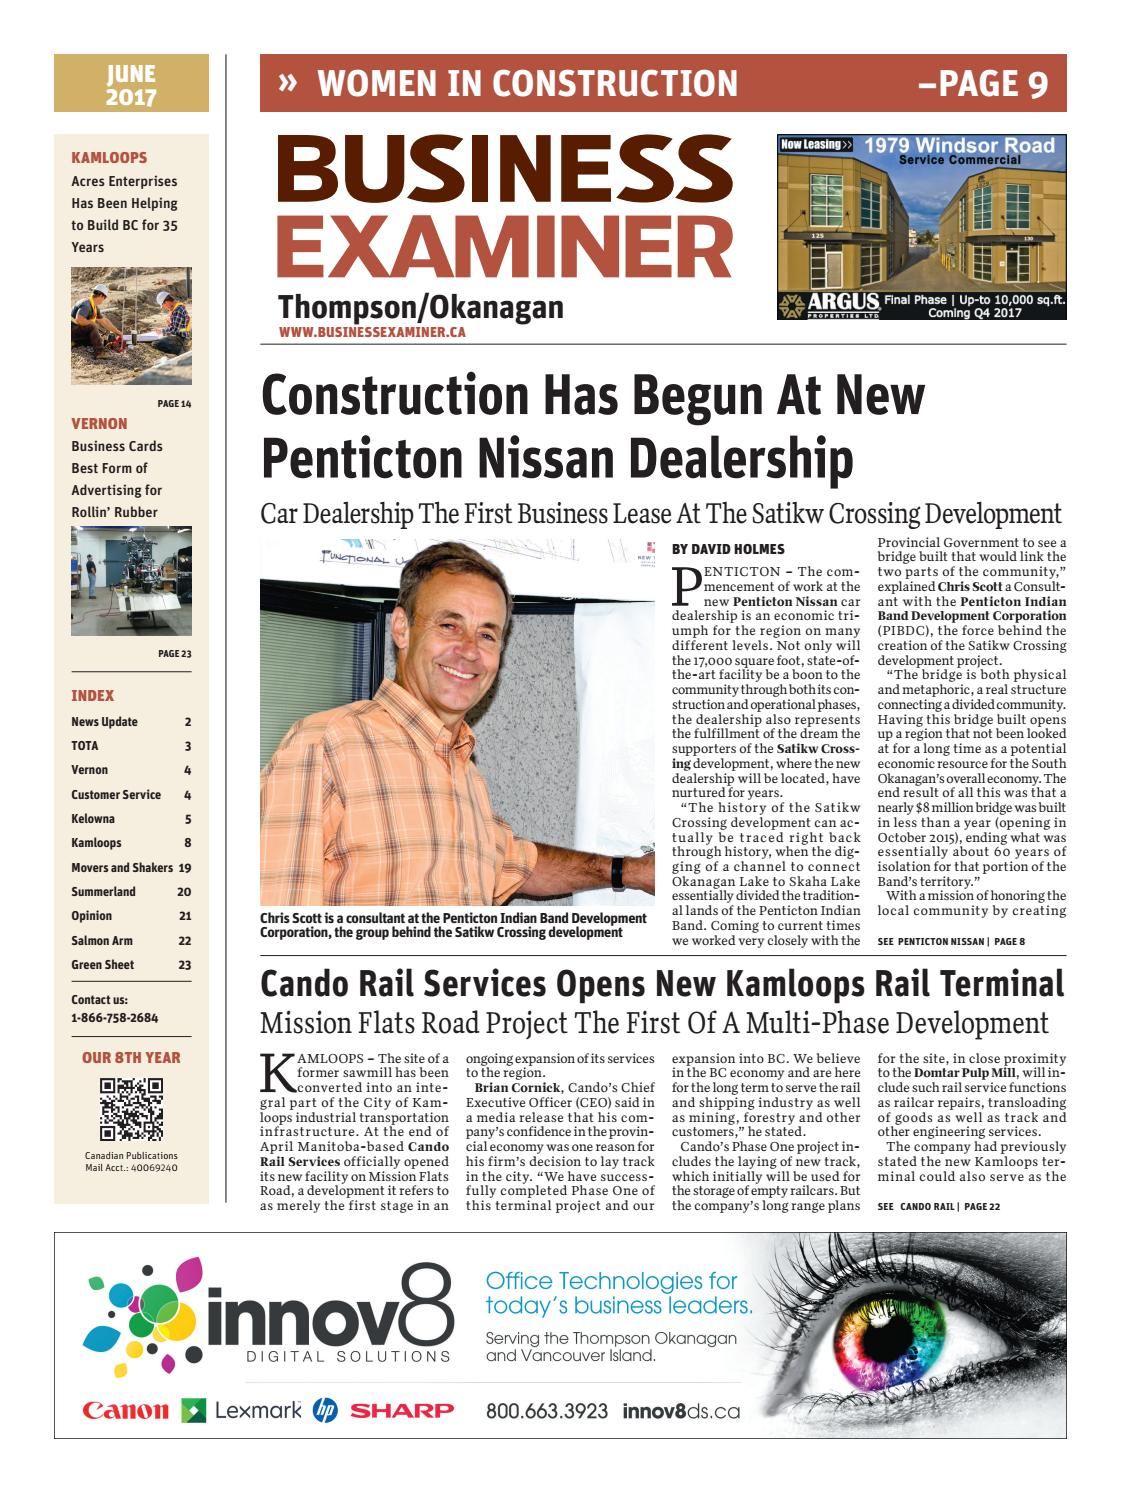 Business Examiner Thompson/Okanagan - June 2017 by Business